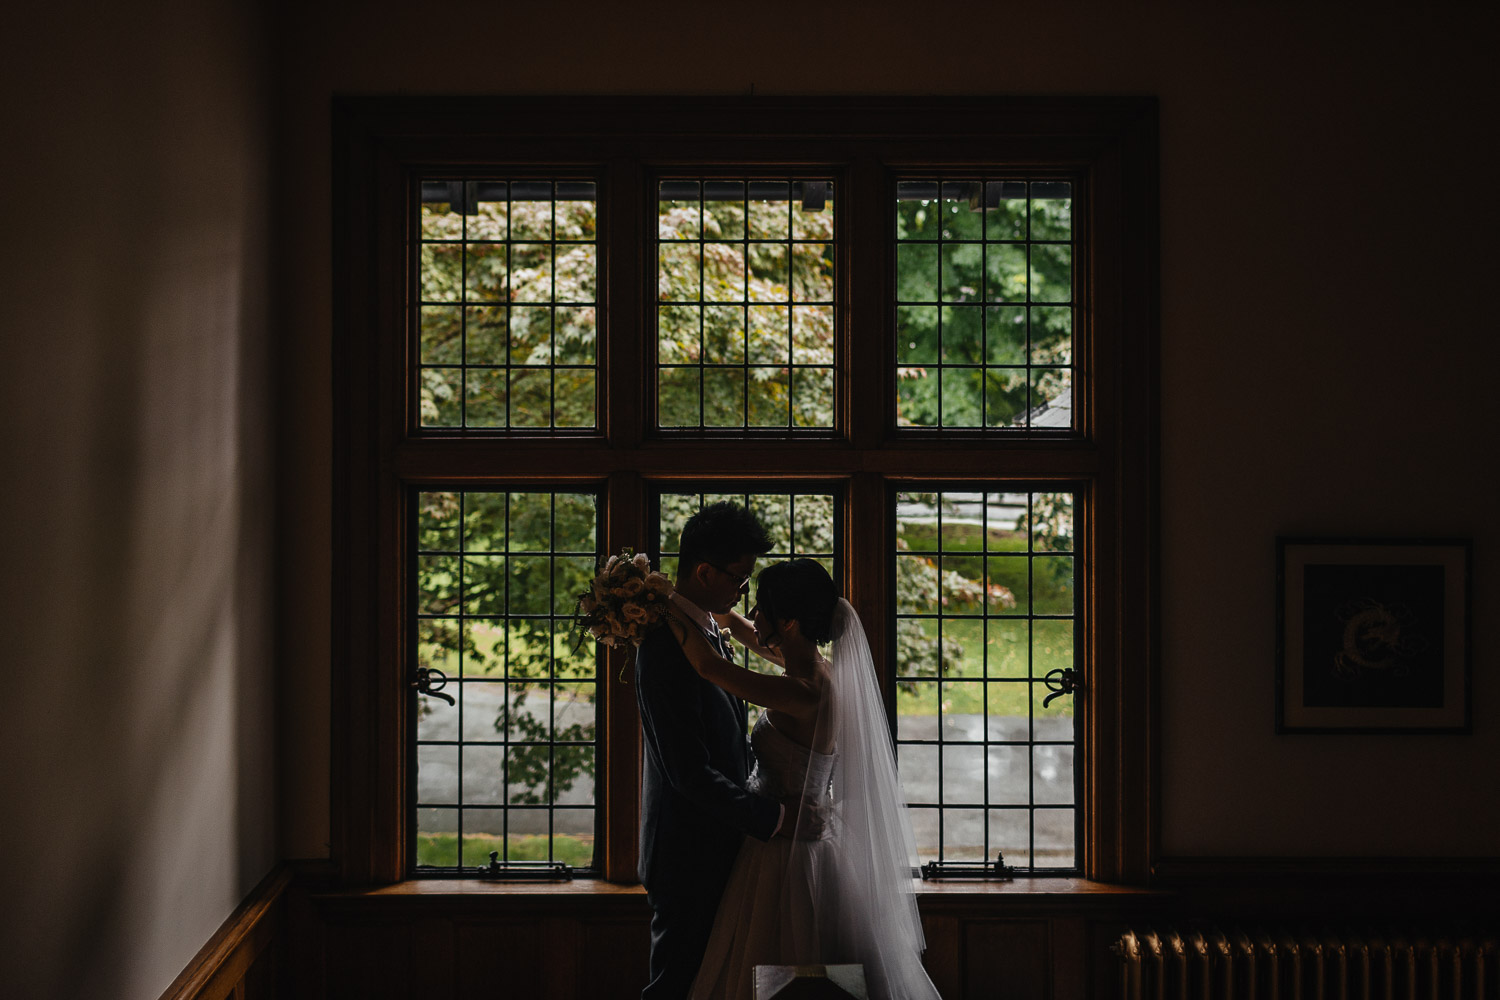 rainy day wedding photography at brockhouse restaurant in vancouver bc